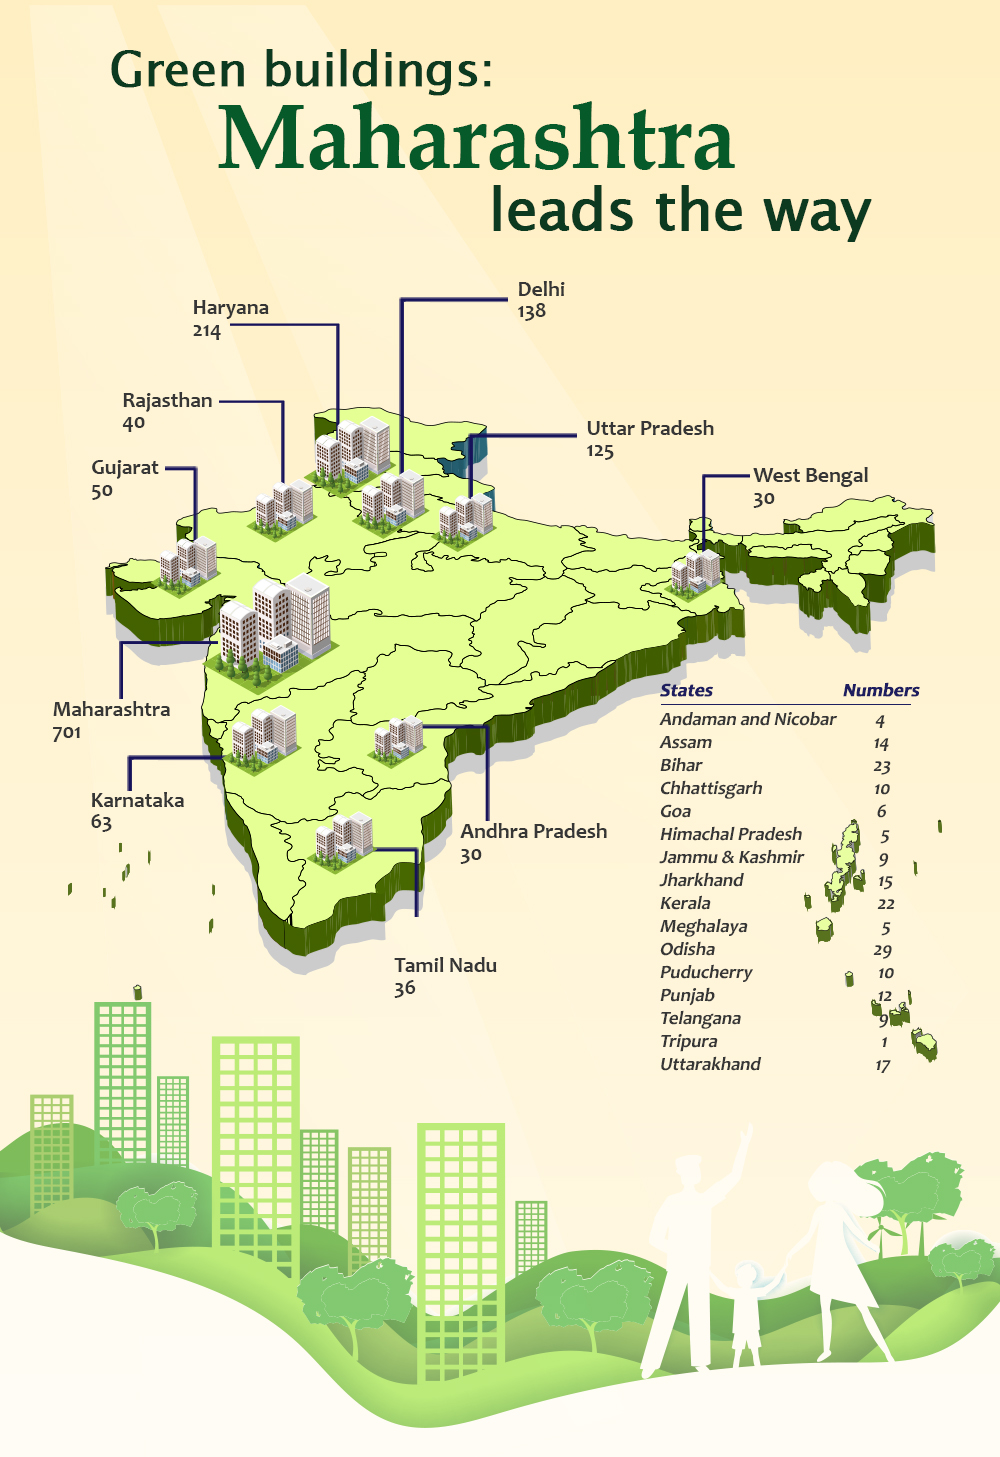 Green buildings - Maharashtra leads the way